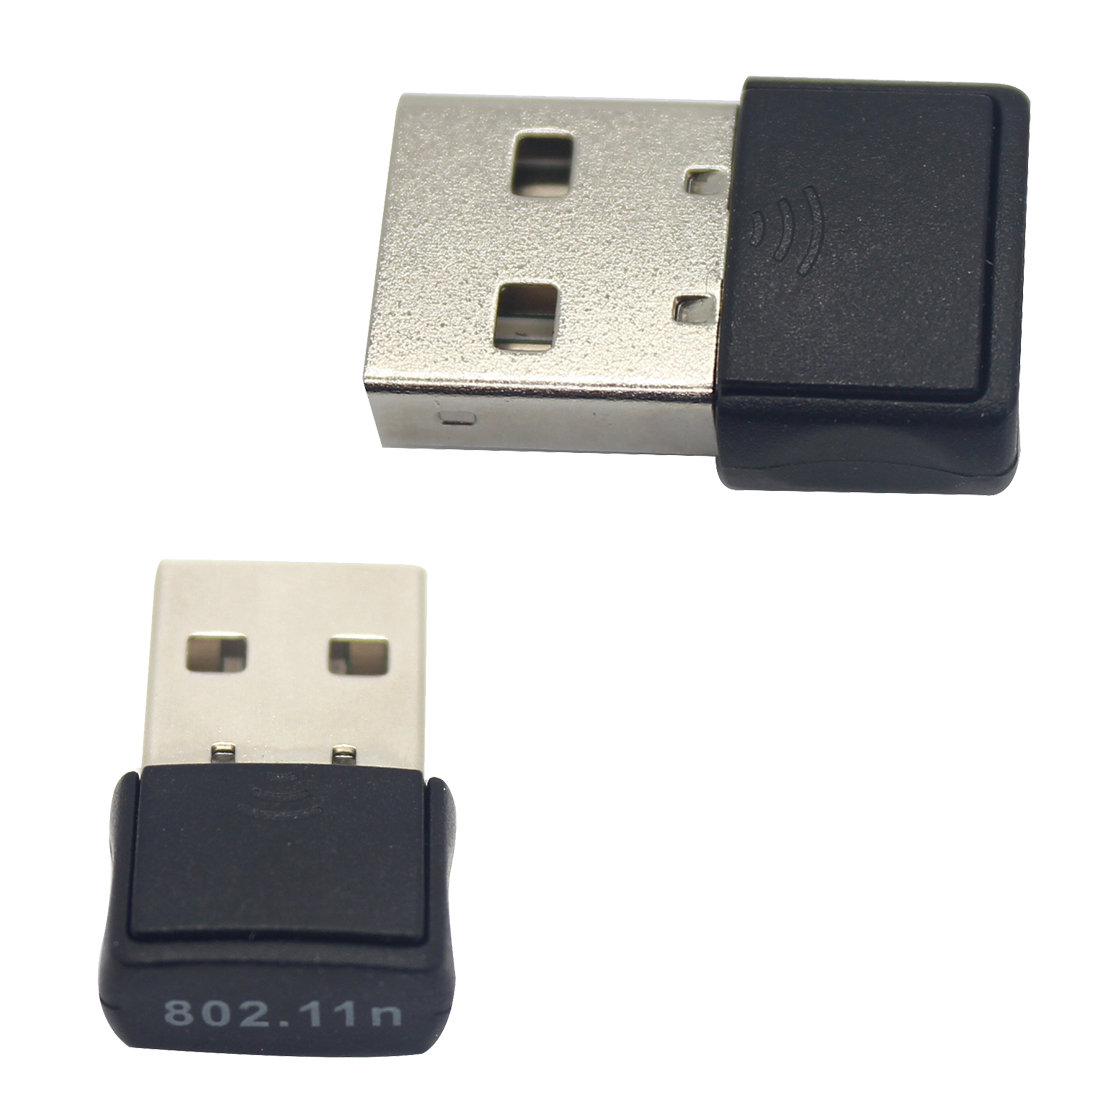 Etmakit Mini USB 2.0 Wireless WiFi Adapter 150Mbps USB ադապտեր WiFi 802.11n անլար ցանցային քարտ Dongle Raspberry Pi B